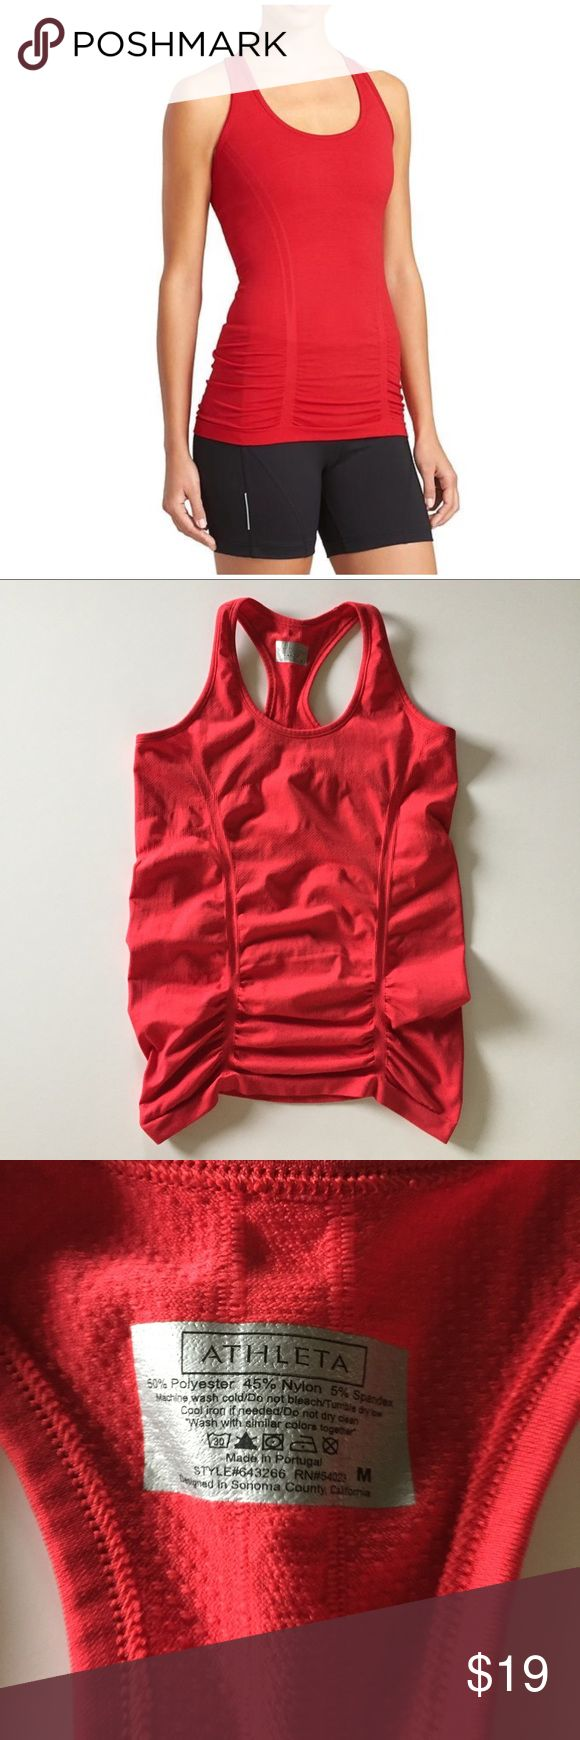 "Athleta Fastest Track tank in red Fastest Track tank from Athleta in size medium. Excellent condition! 15"" from underarm to underarm and 24"" long. ""Your favorite, go-to training tank for high-intensity sweat sessions has our best technologies: Unstinkable, Regul8, and chafe-free seamless fabric. INSPIRED FOR: run, gym/training, studio workouts Racerback gives you full range of arm motion Shirring along the front and back is fit to flatter Gripper dots along hem stop it from riding up.""…"